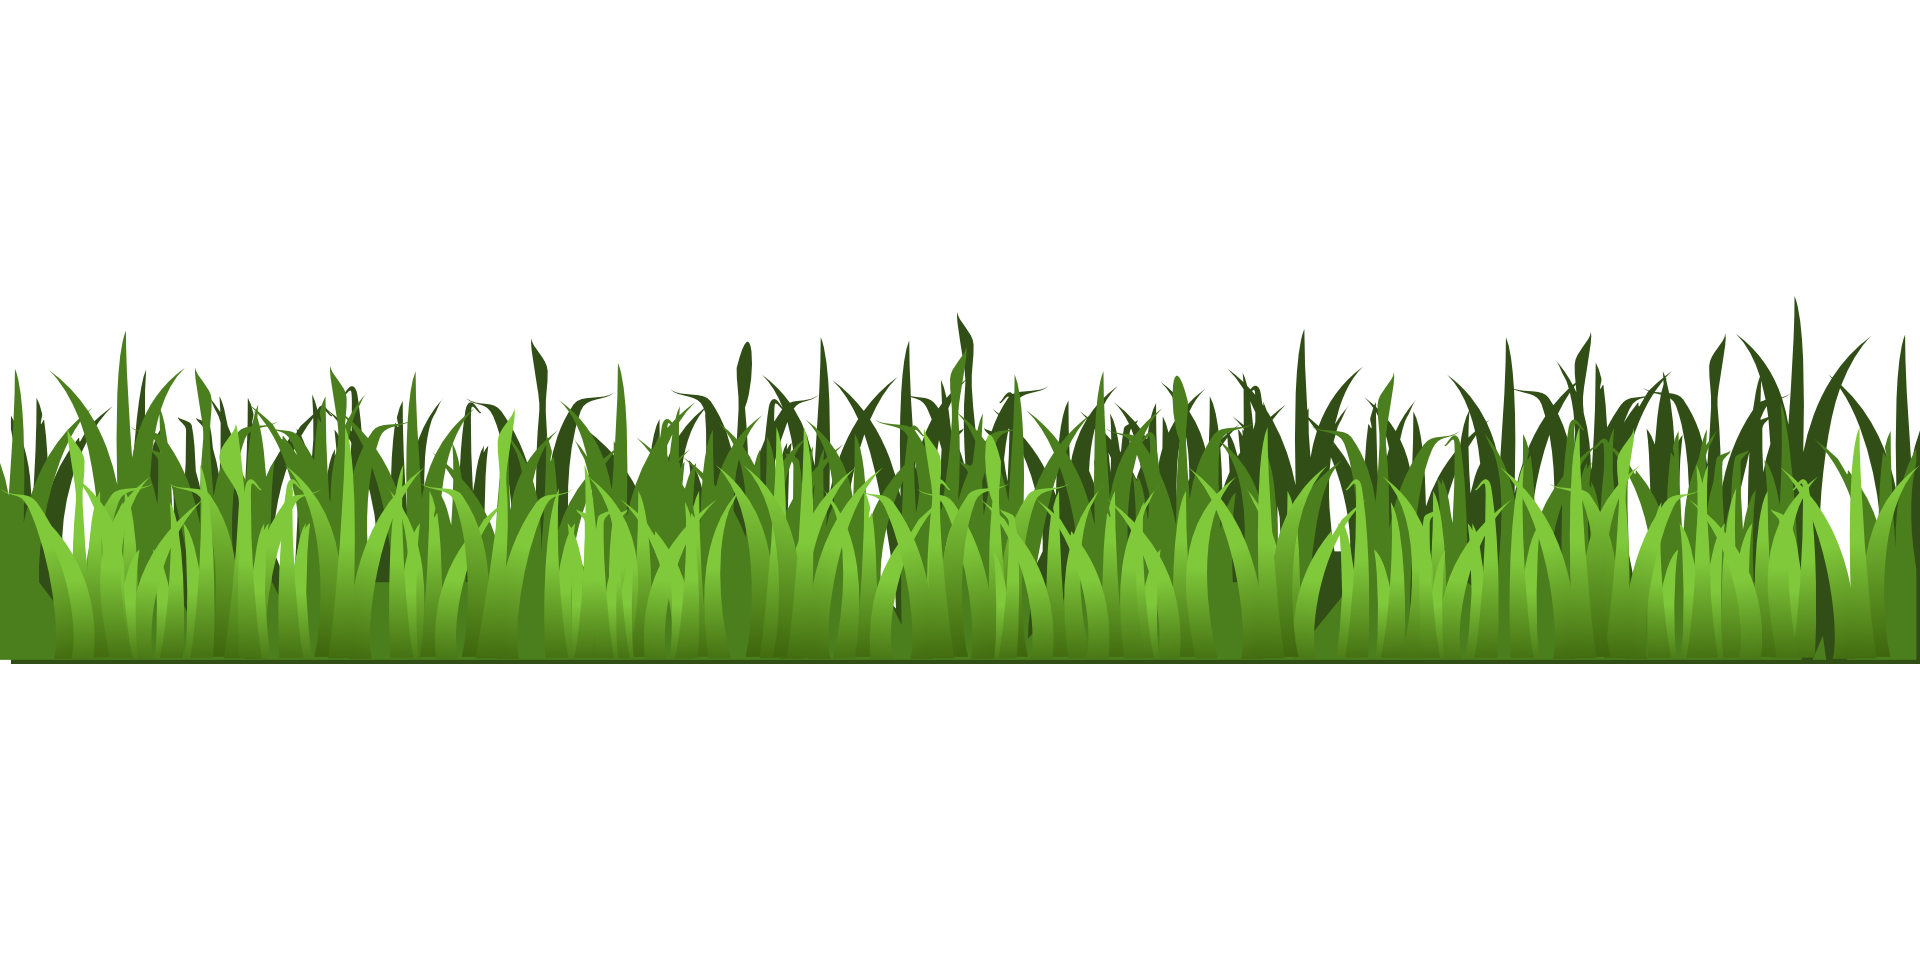 Feilds clipart lawn Isolated Meadow by nobacks free